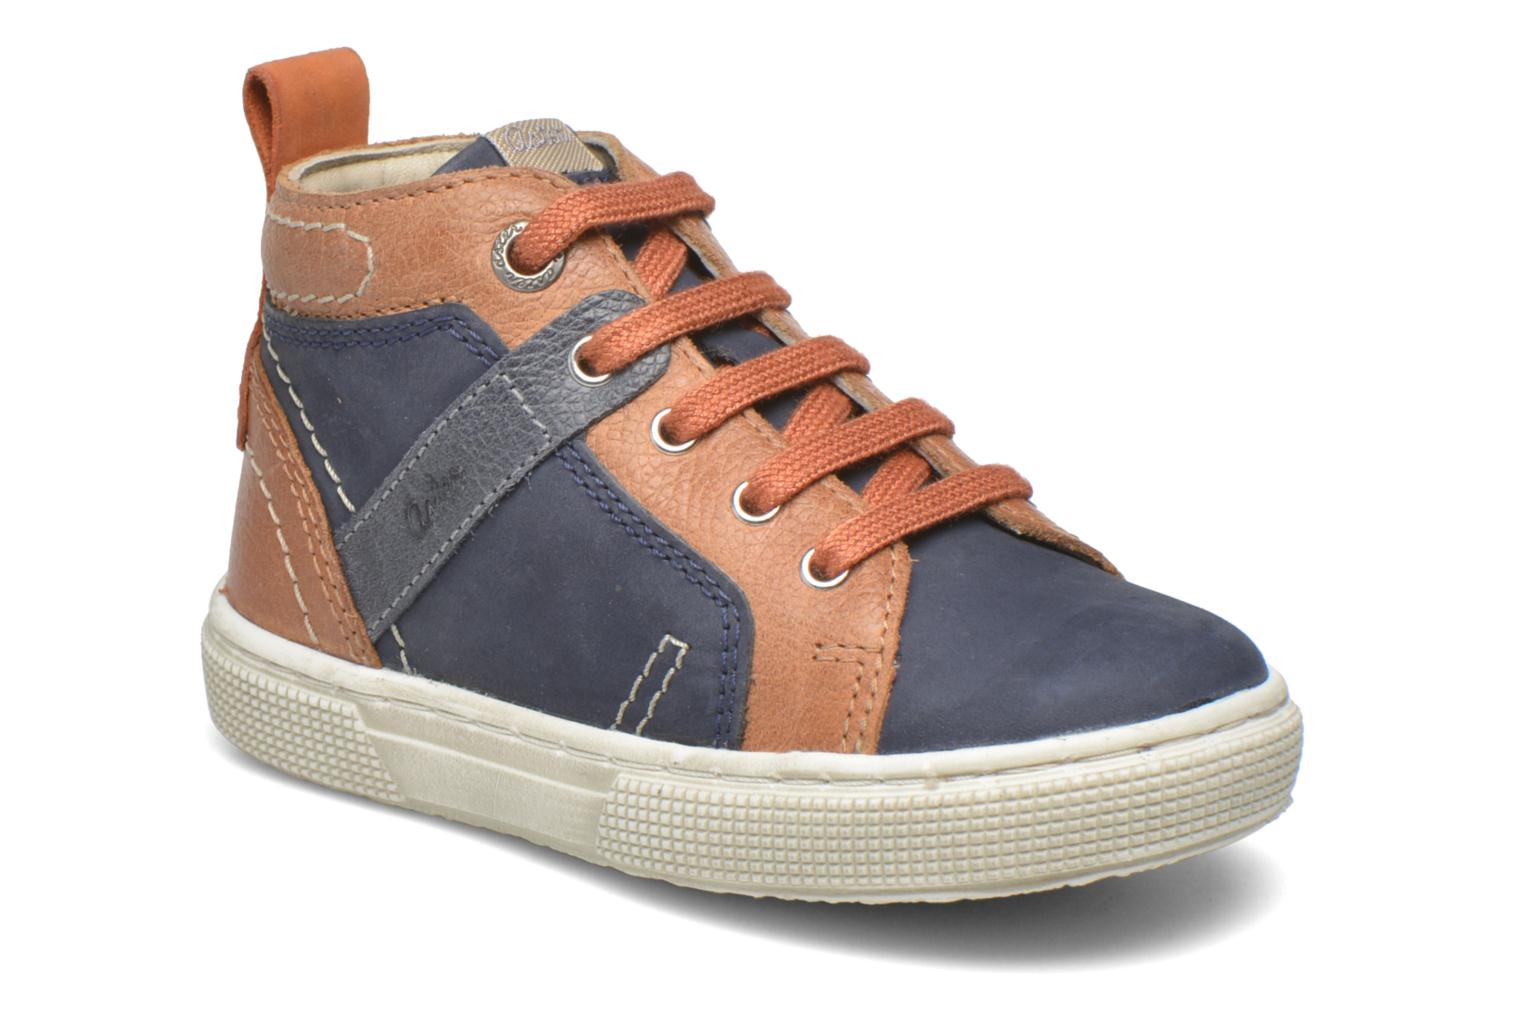 Aster Marine Charles Charles Camel Aster OHqy0